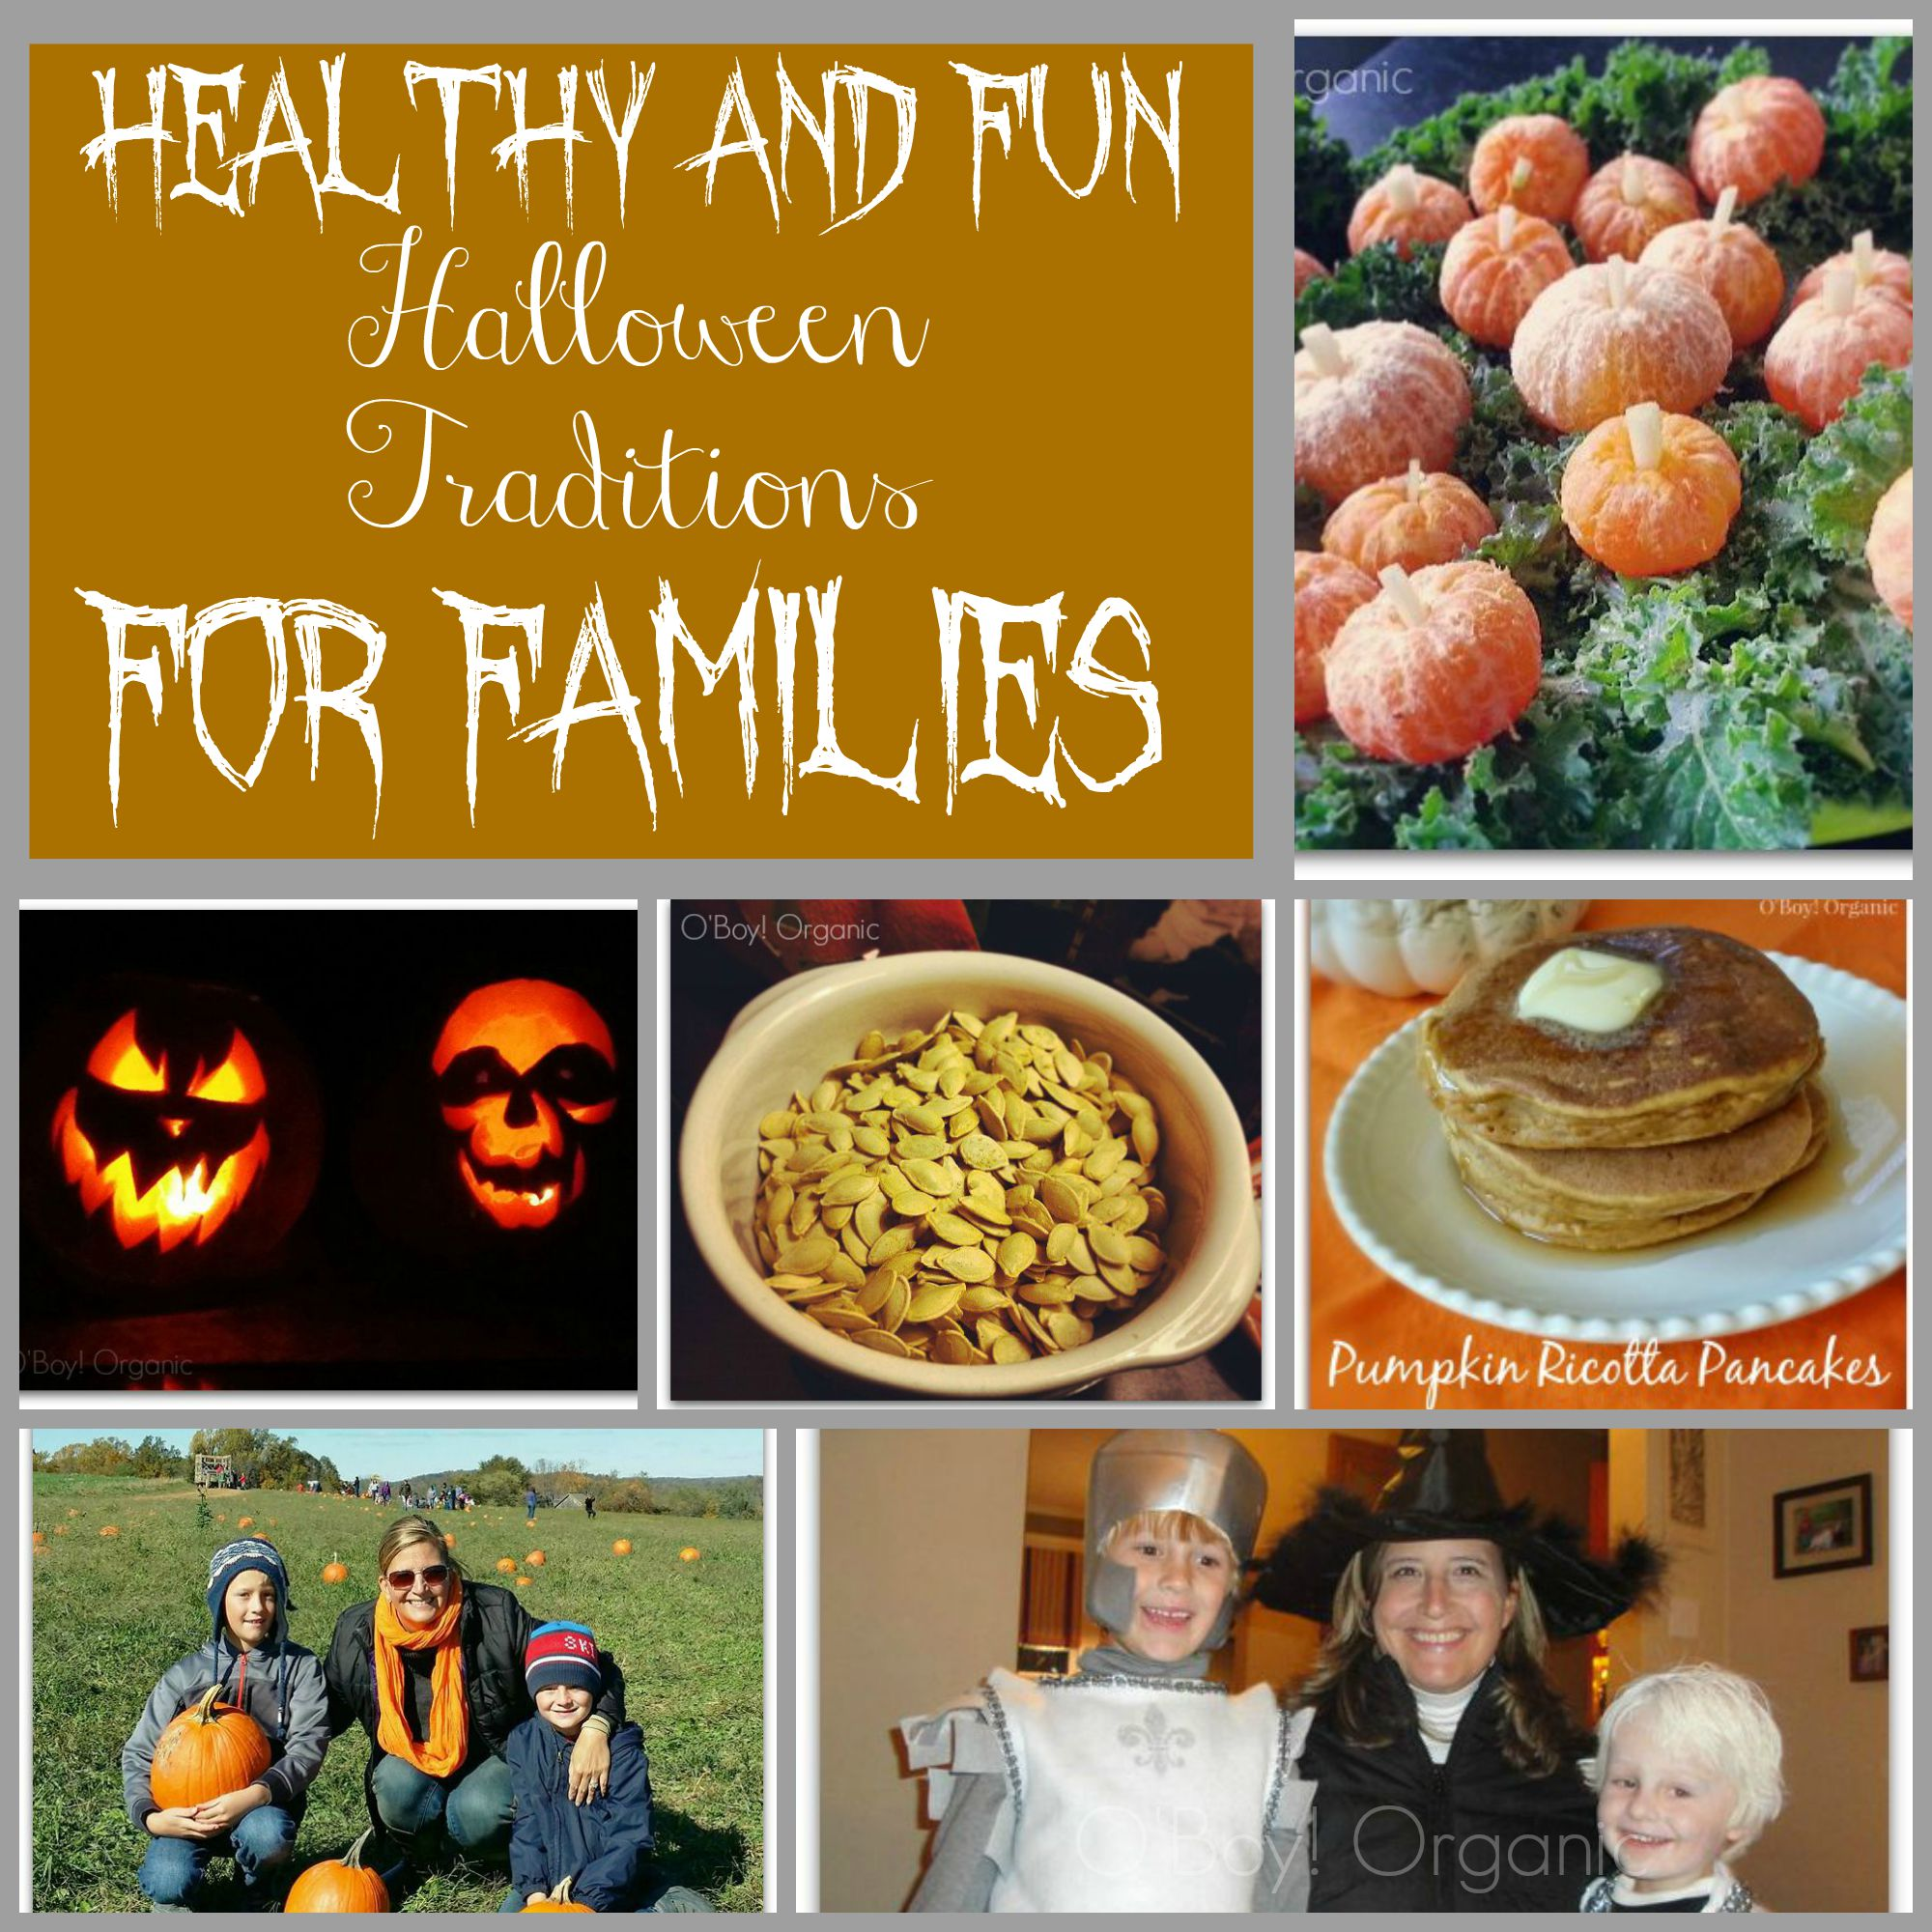 Healthy and Fun Halloween Traditions for Families